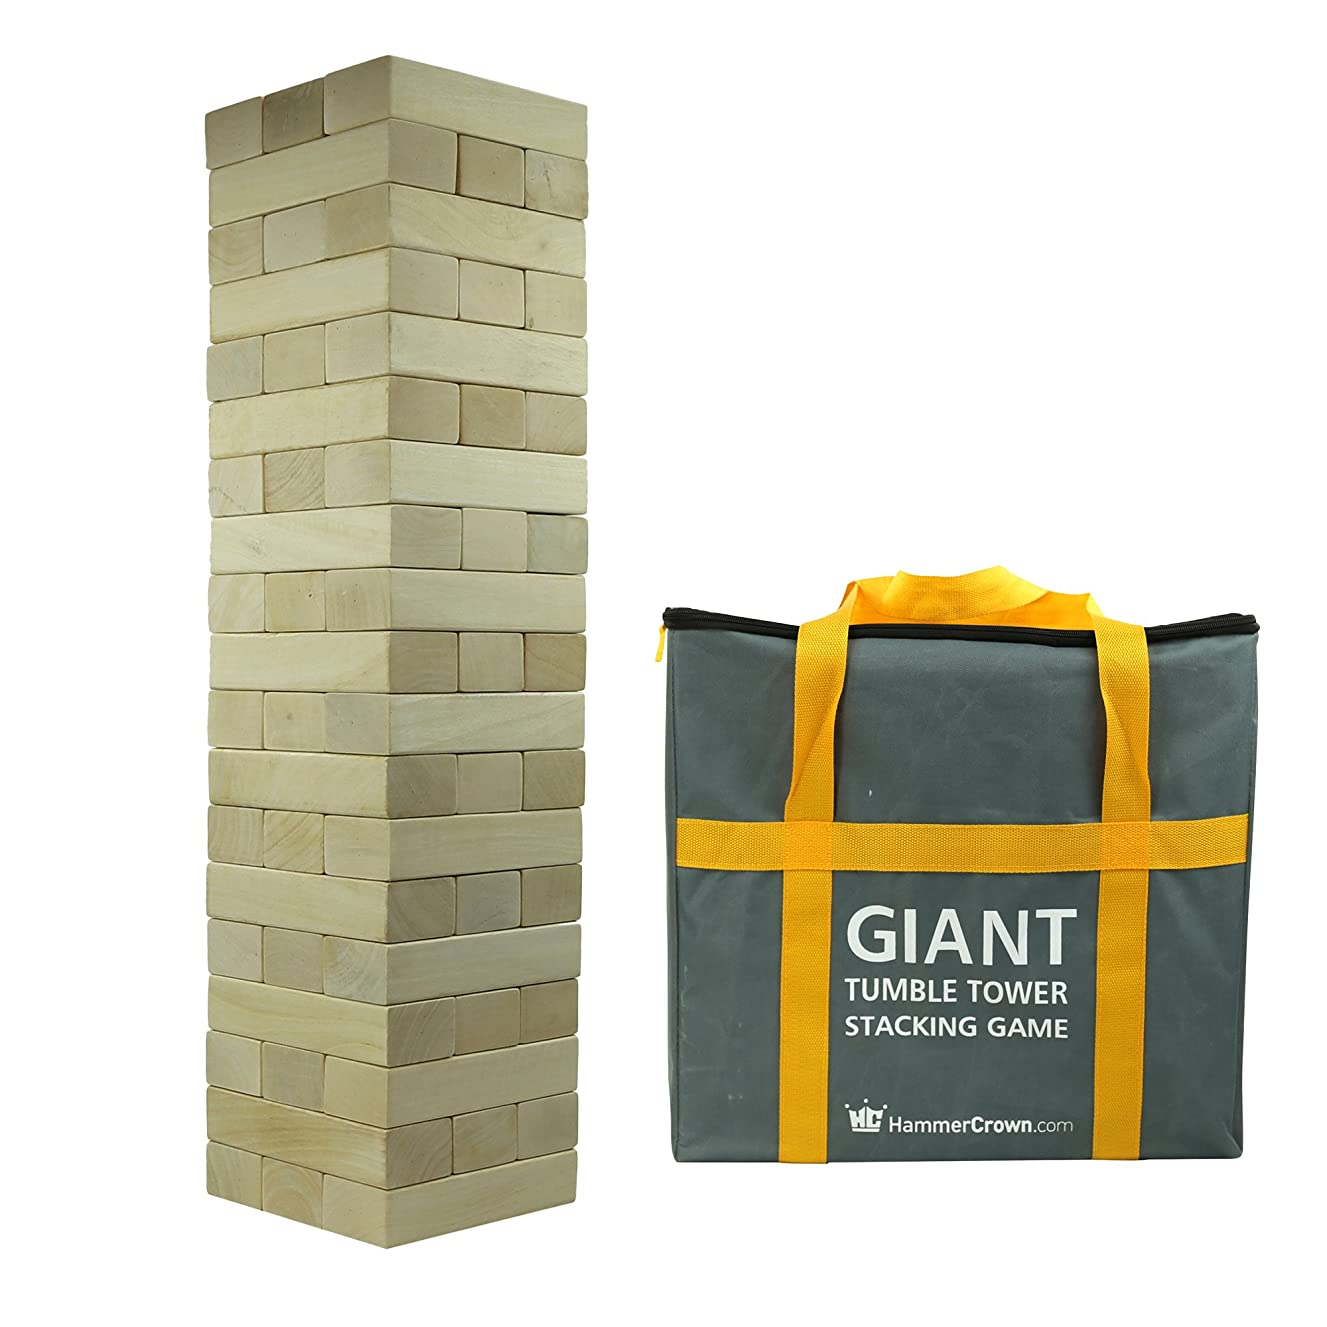 Hammer Crown Giant Tumble Tower (Hardwood)